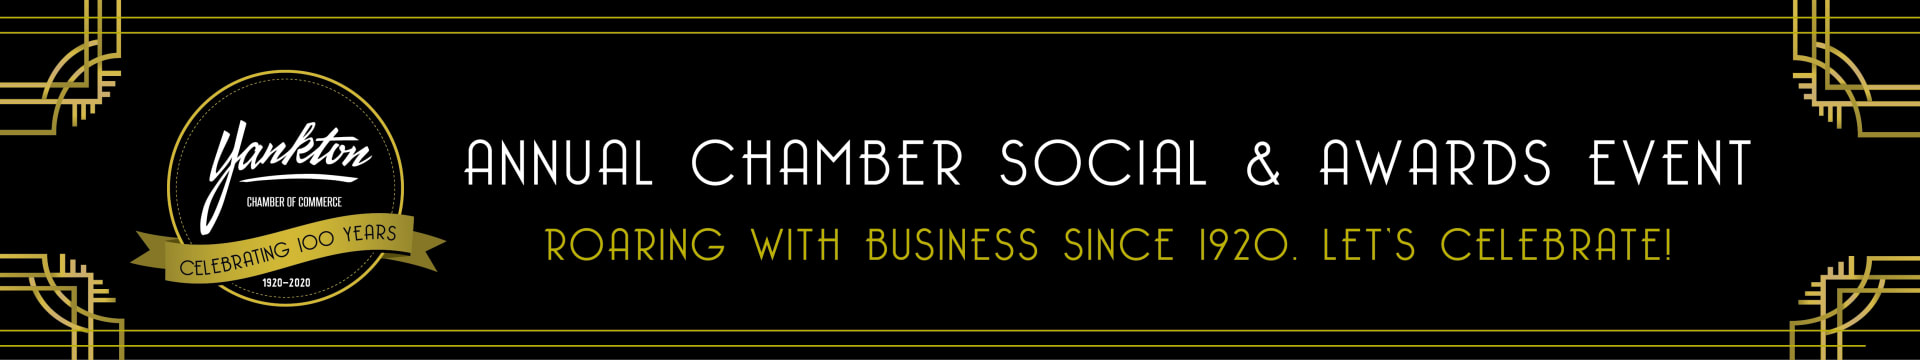 Annual Chamber Social & Awards Event